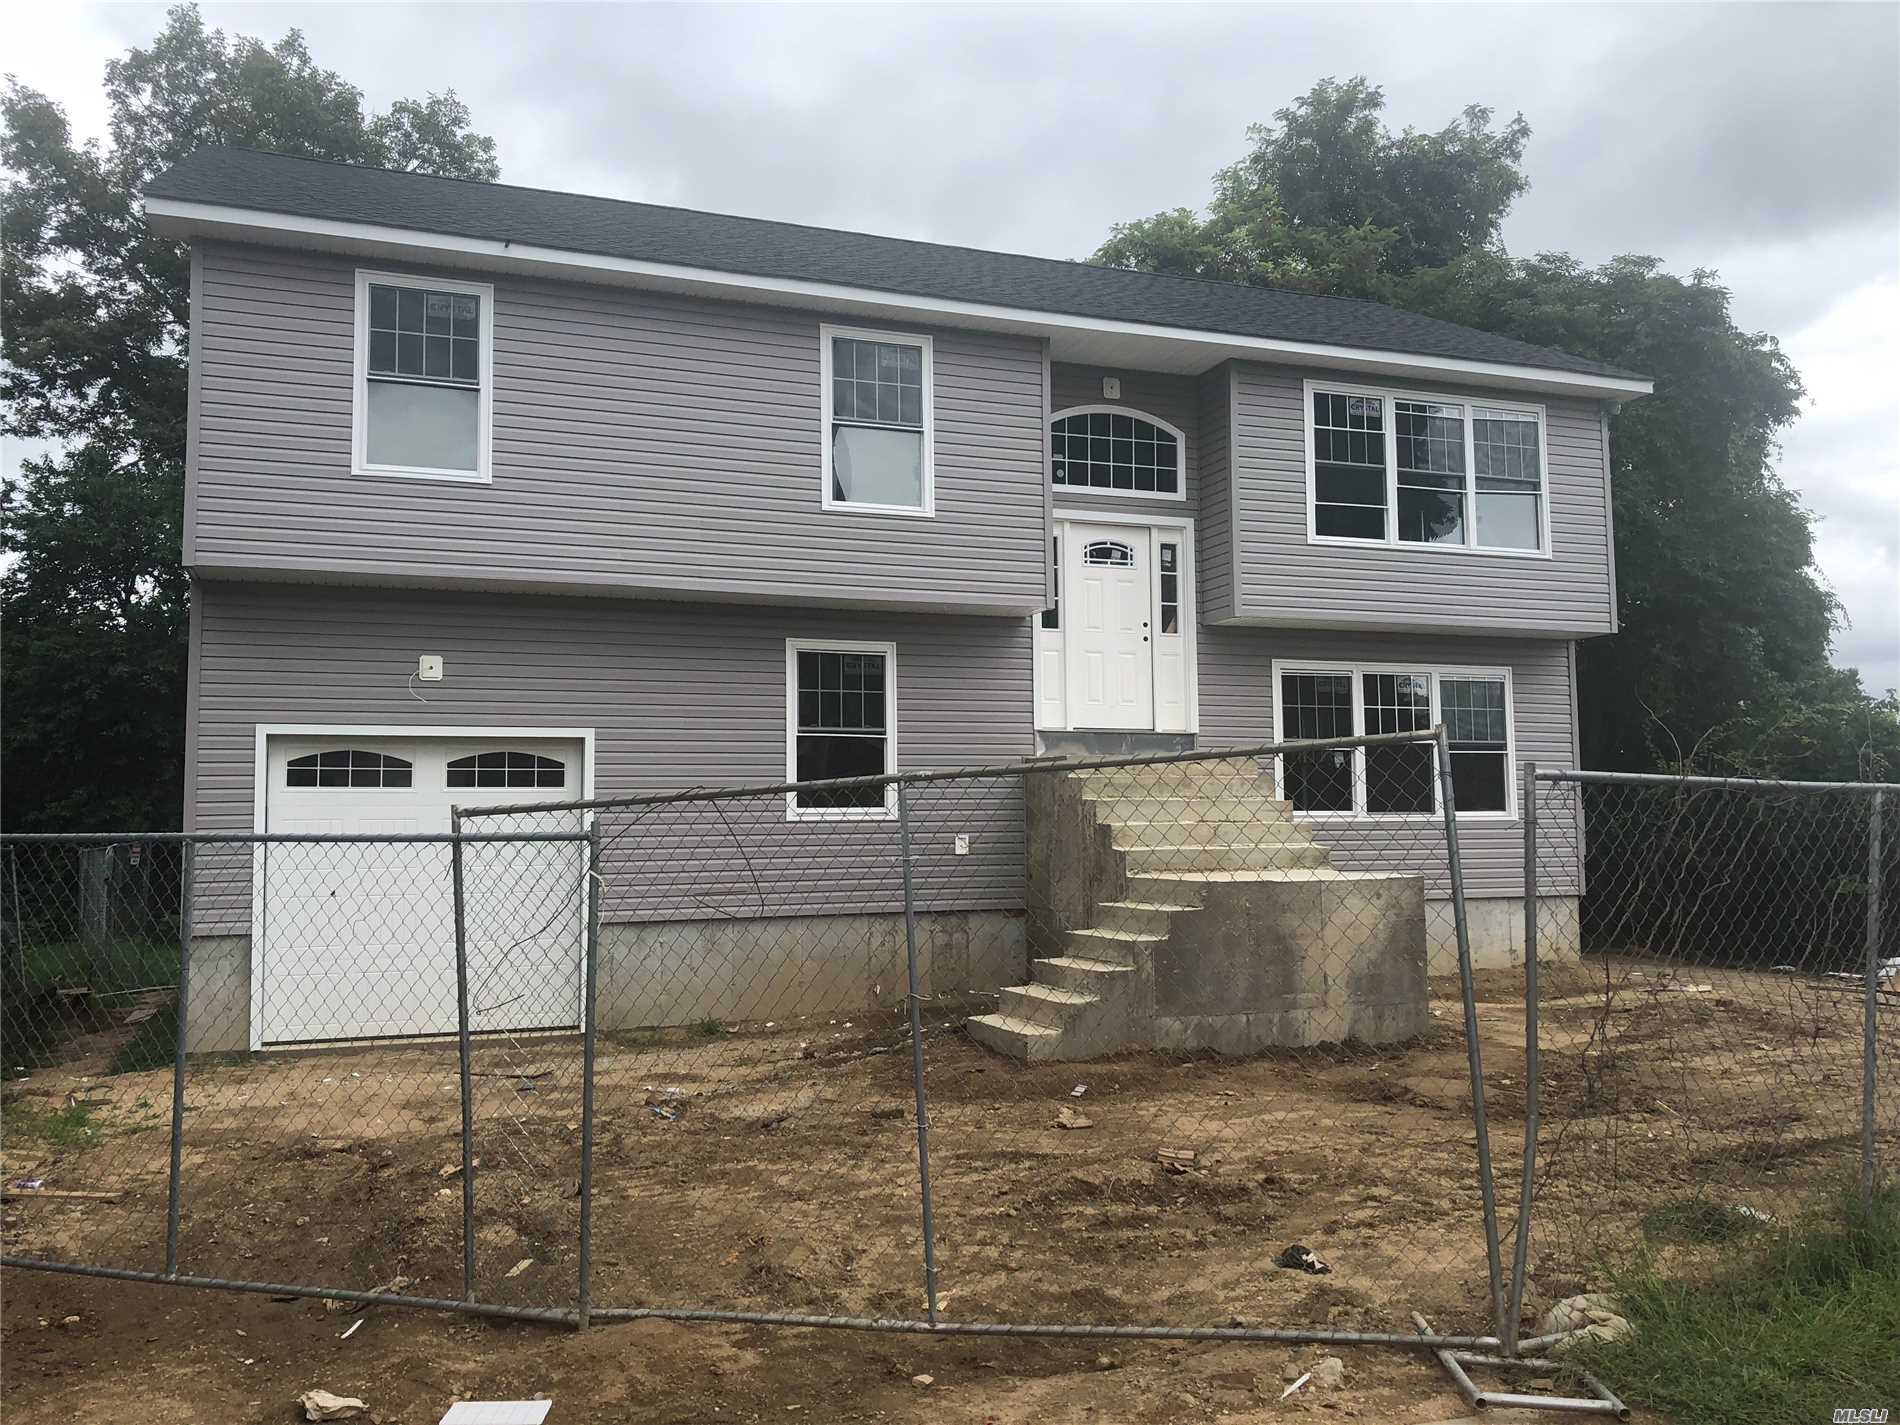 Photos Of Completed House Is For Workmanship Only...Same Builder Built It. Great Deadend Location, 64X100, Huge Full Basement With Separate Entrance, Cac, 5 Spacious Bedrooms, 2 Baths, 1 Car Garage, Home Will Be Built By 10/15, Still Time To Pick Out A Few Things.